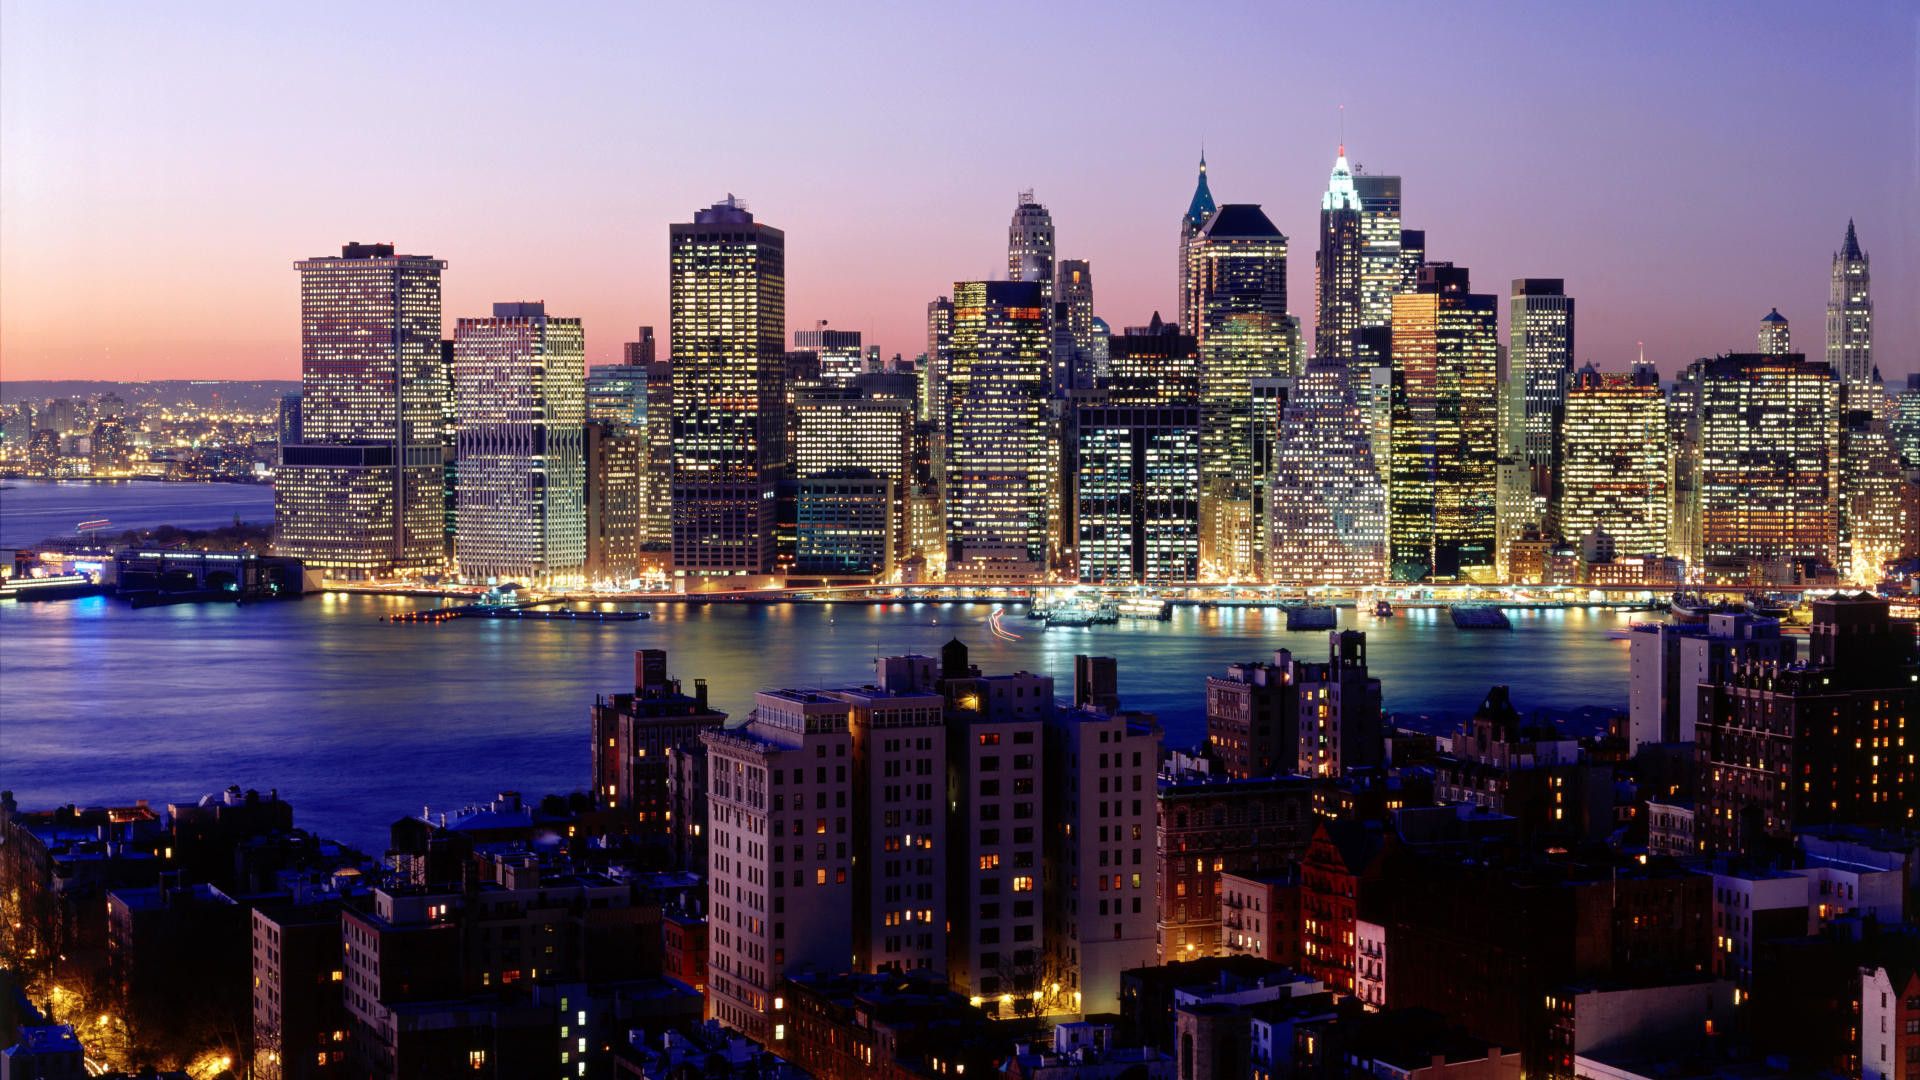 1920x1080 Download Background - Twilight Sky, New York City, New York - Free Cool  Backgrounds and Wallpapers for your Desktop Or Laptop.